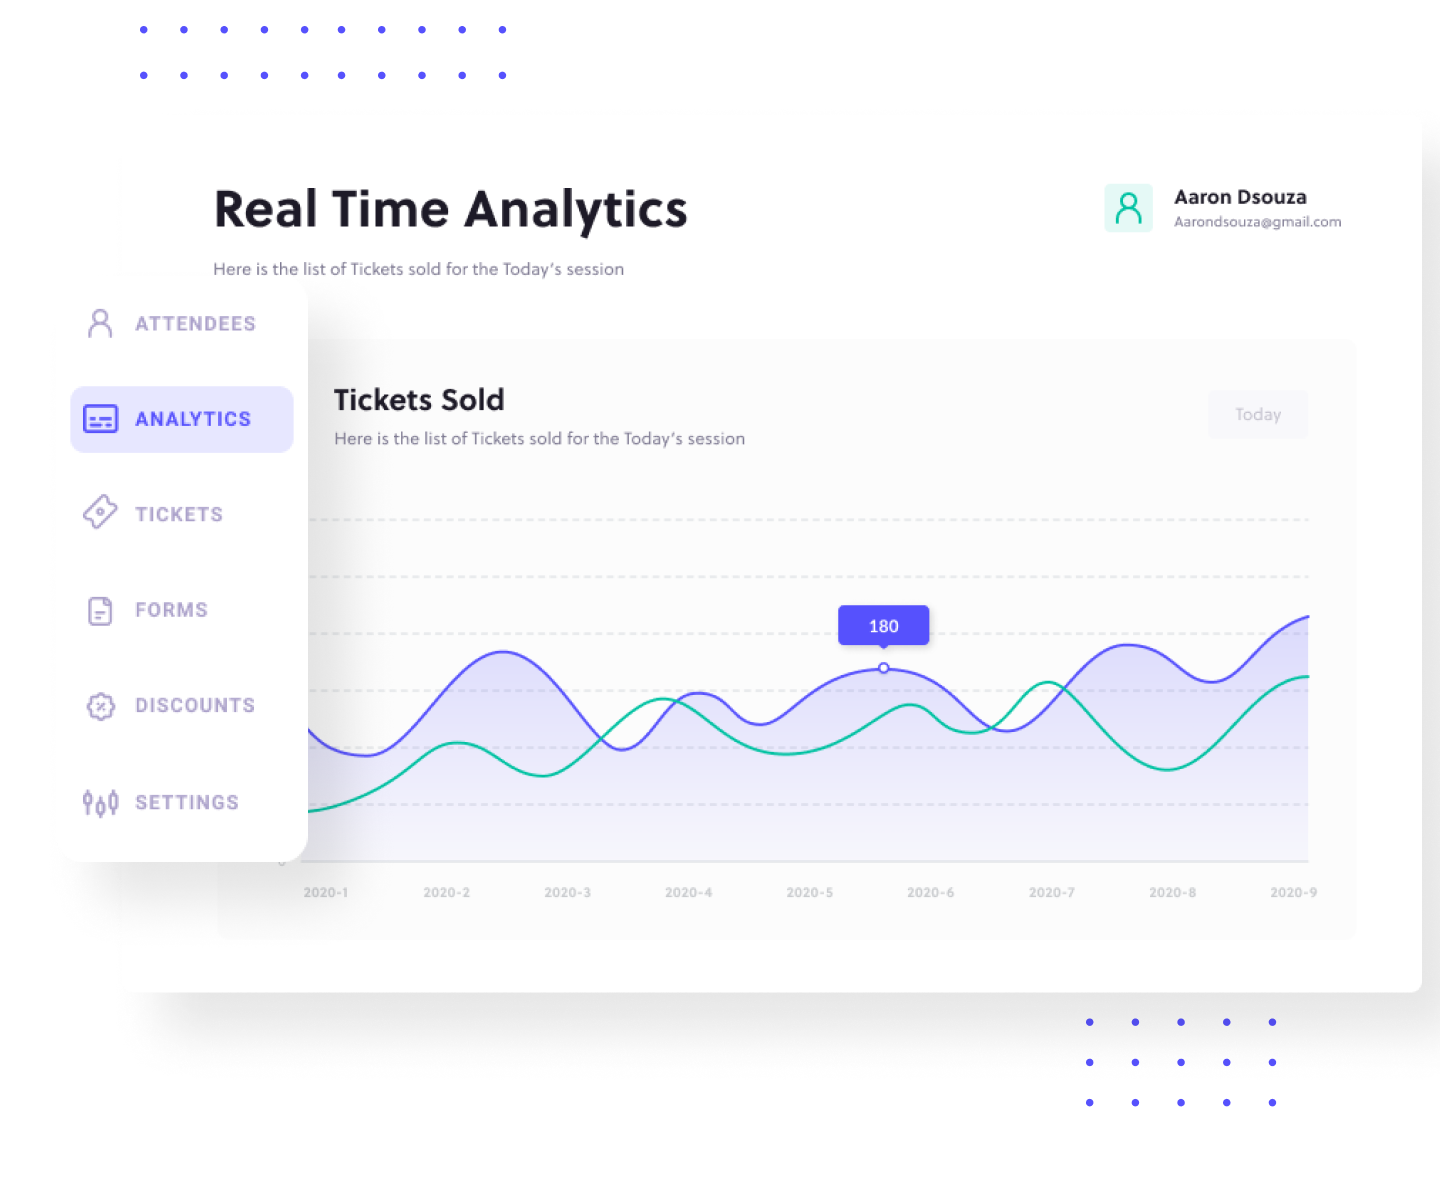 Analytics dashboard showing the real-time data of the number of tickets sold each day for the event.